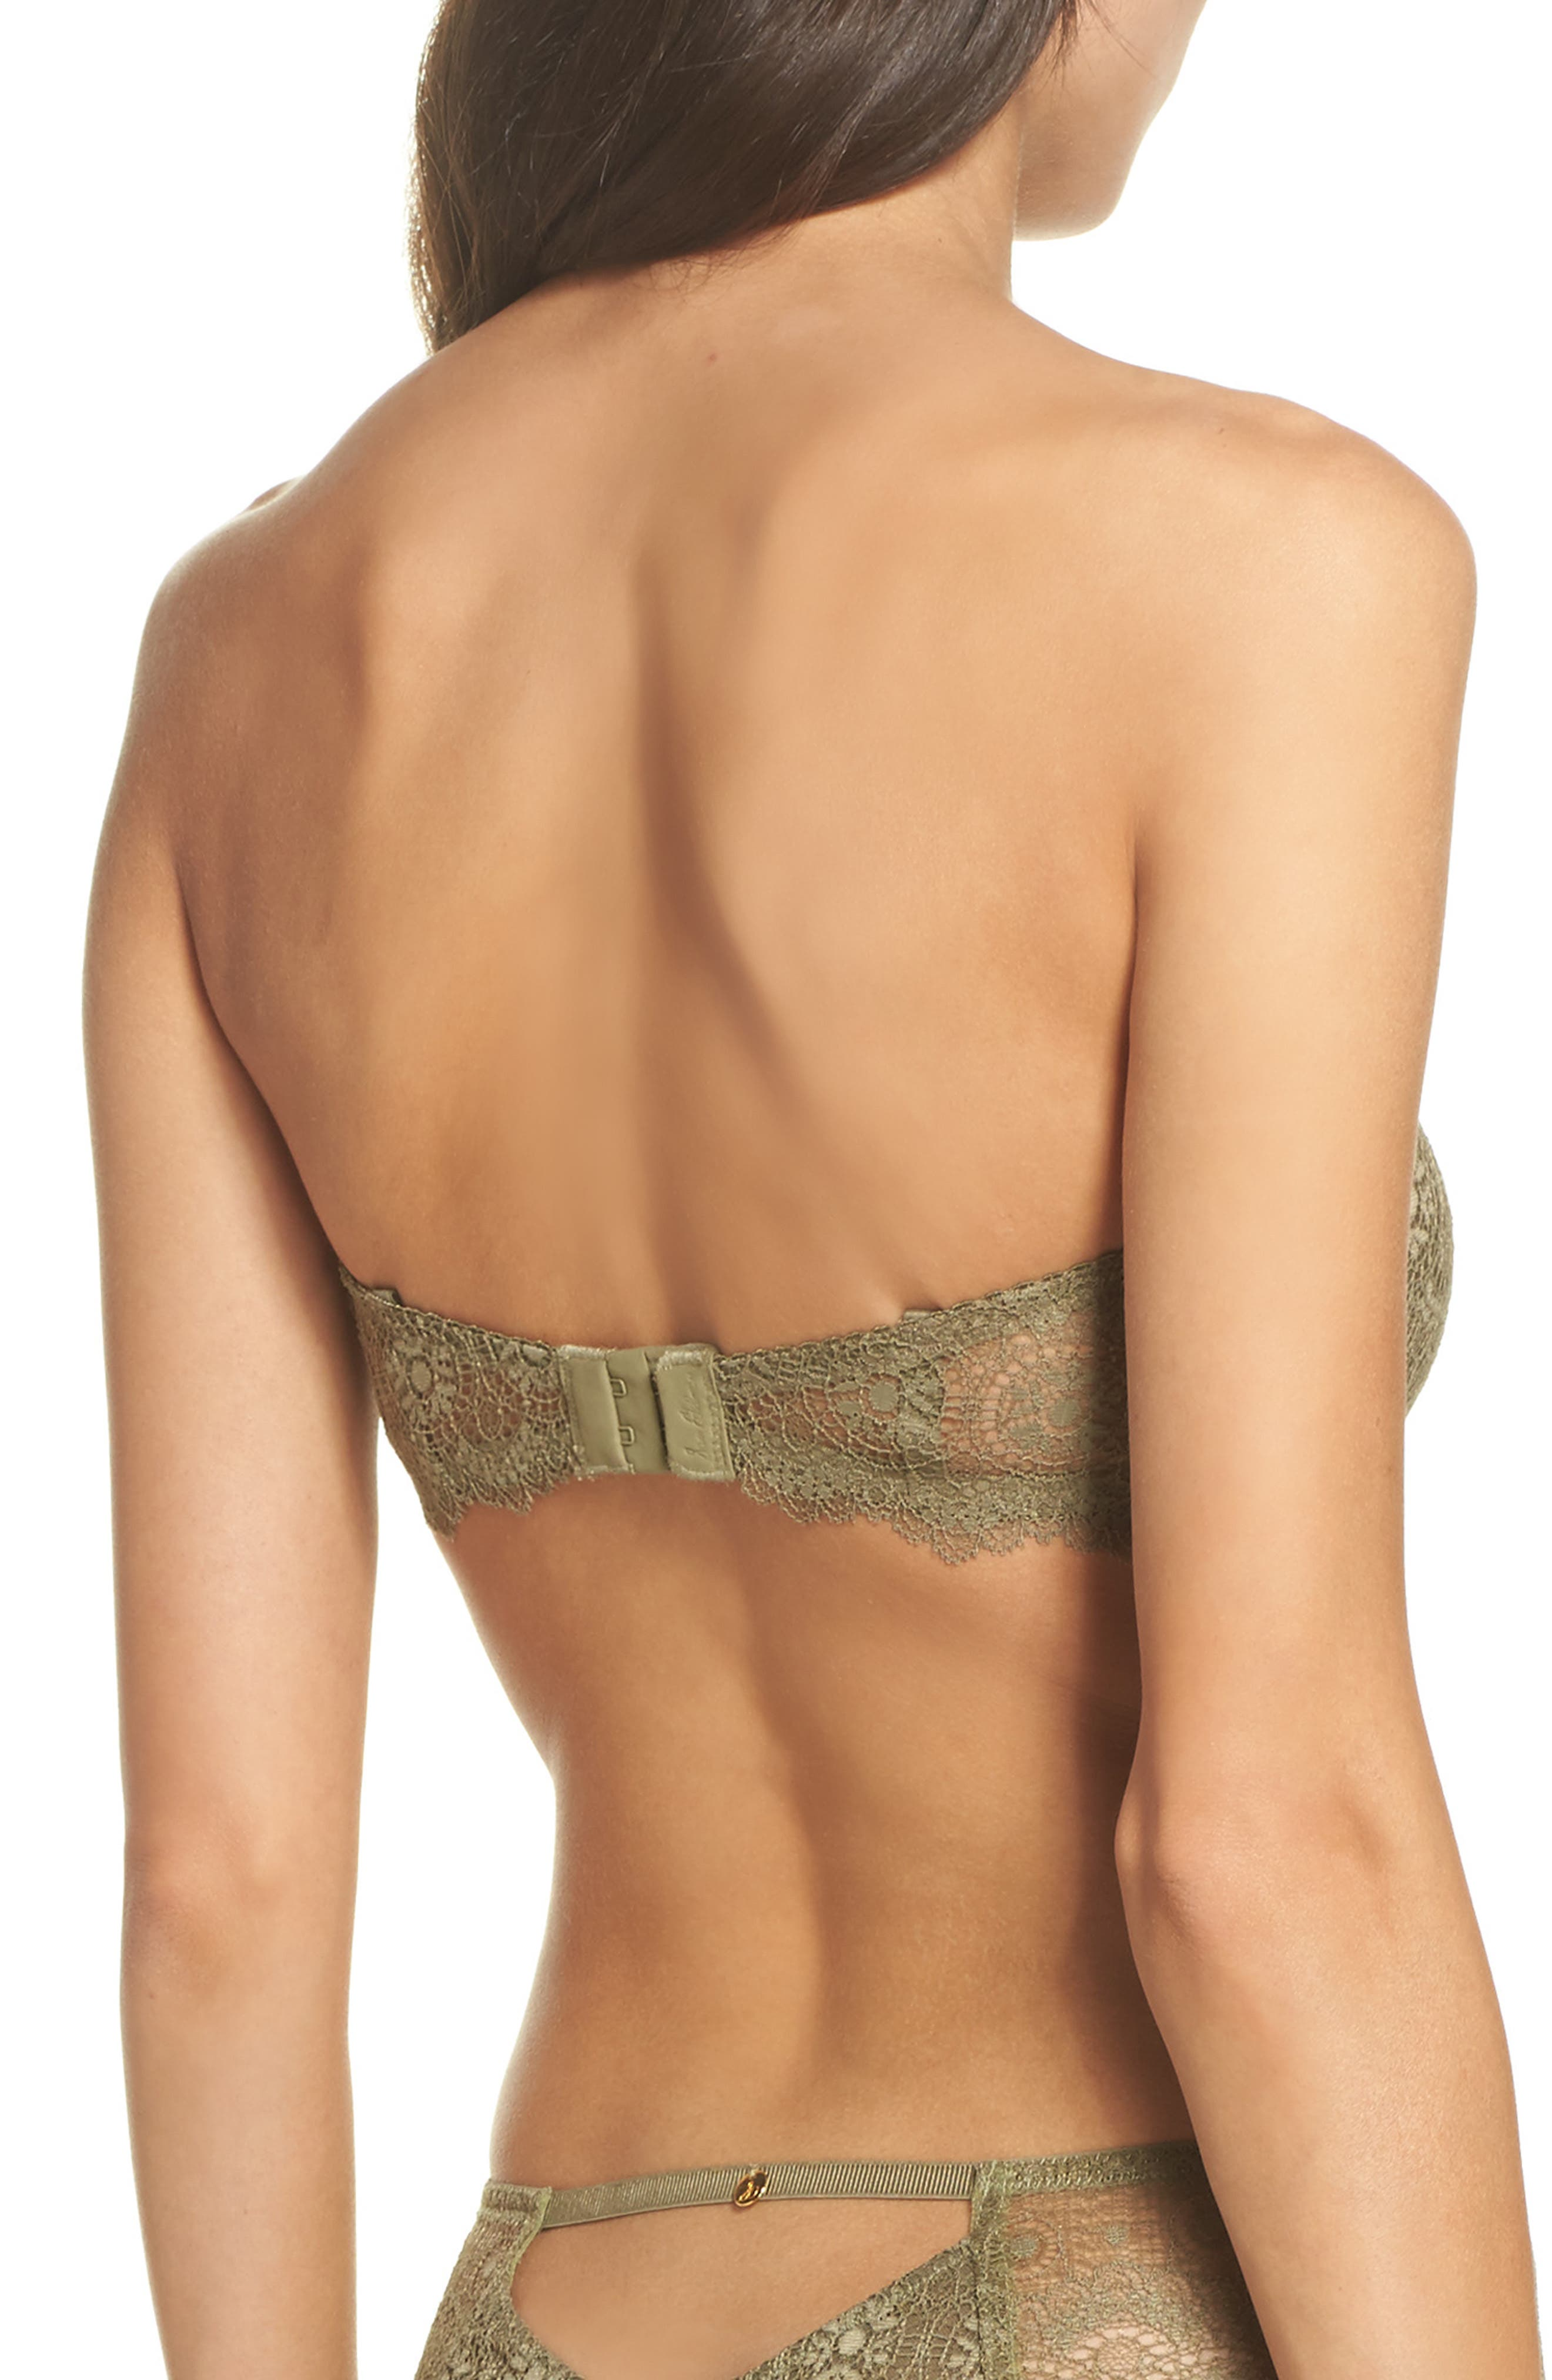 Strapless Underwire Lace Bra,                             Alternate thumbnail 2, color,                             331